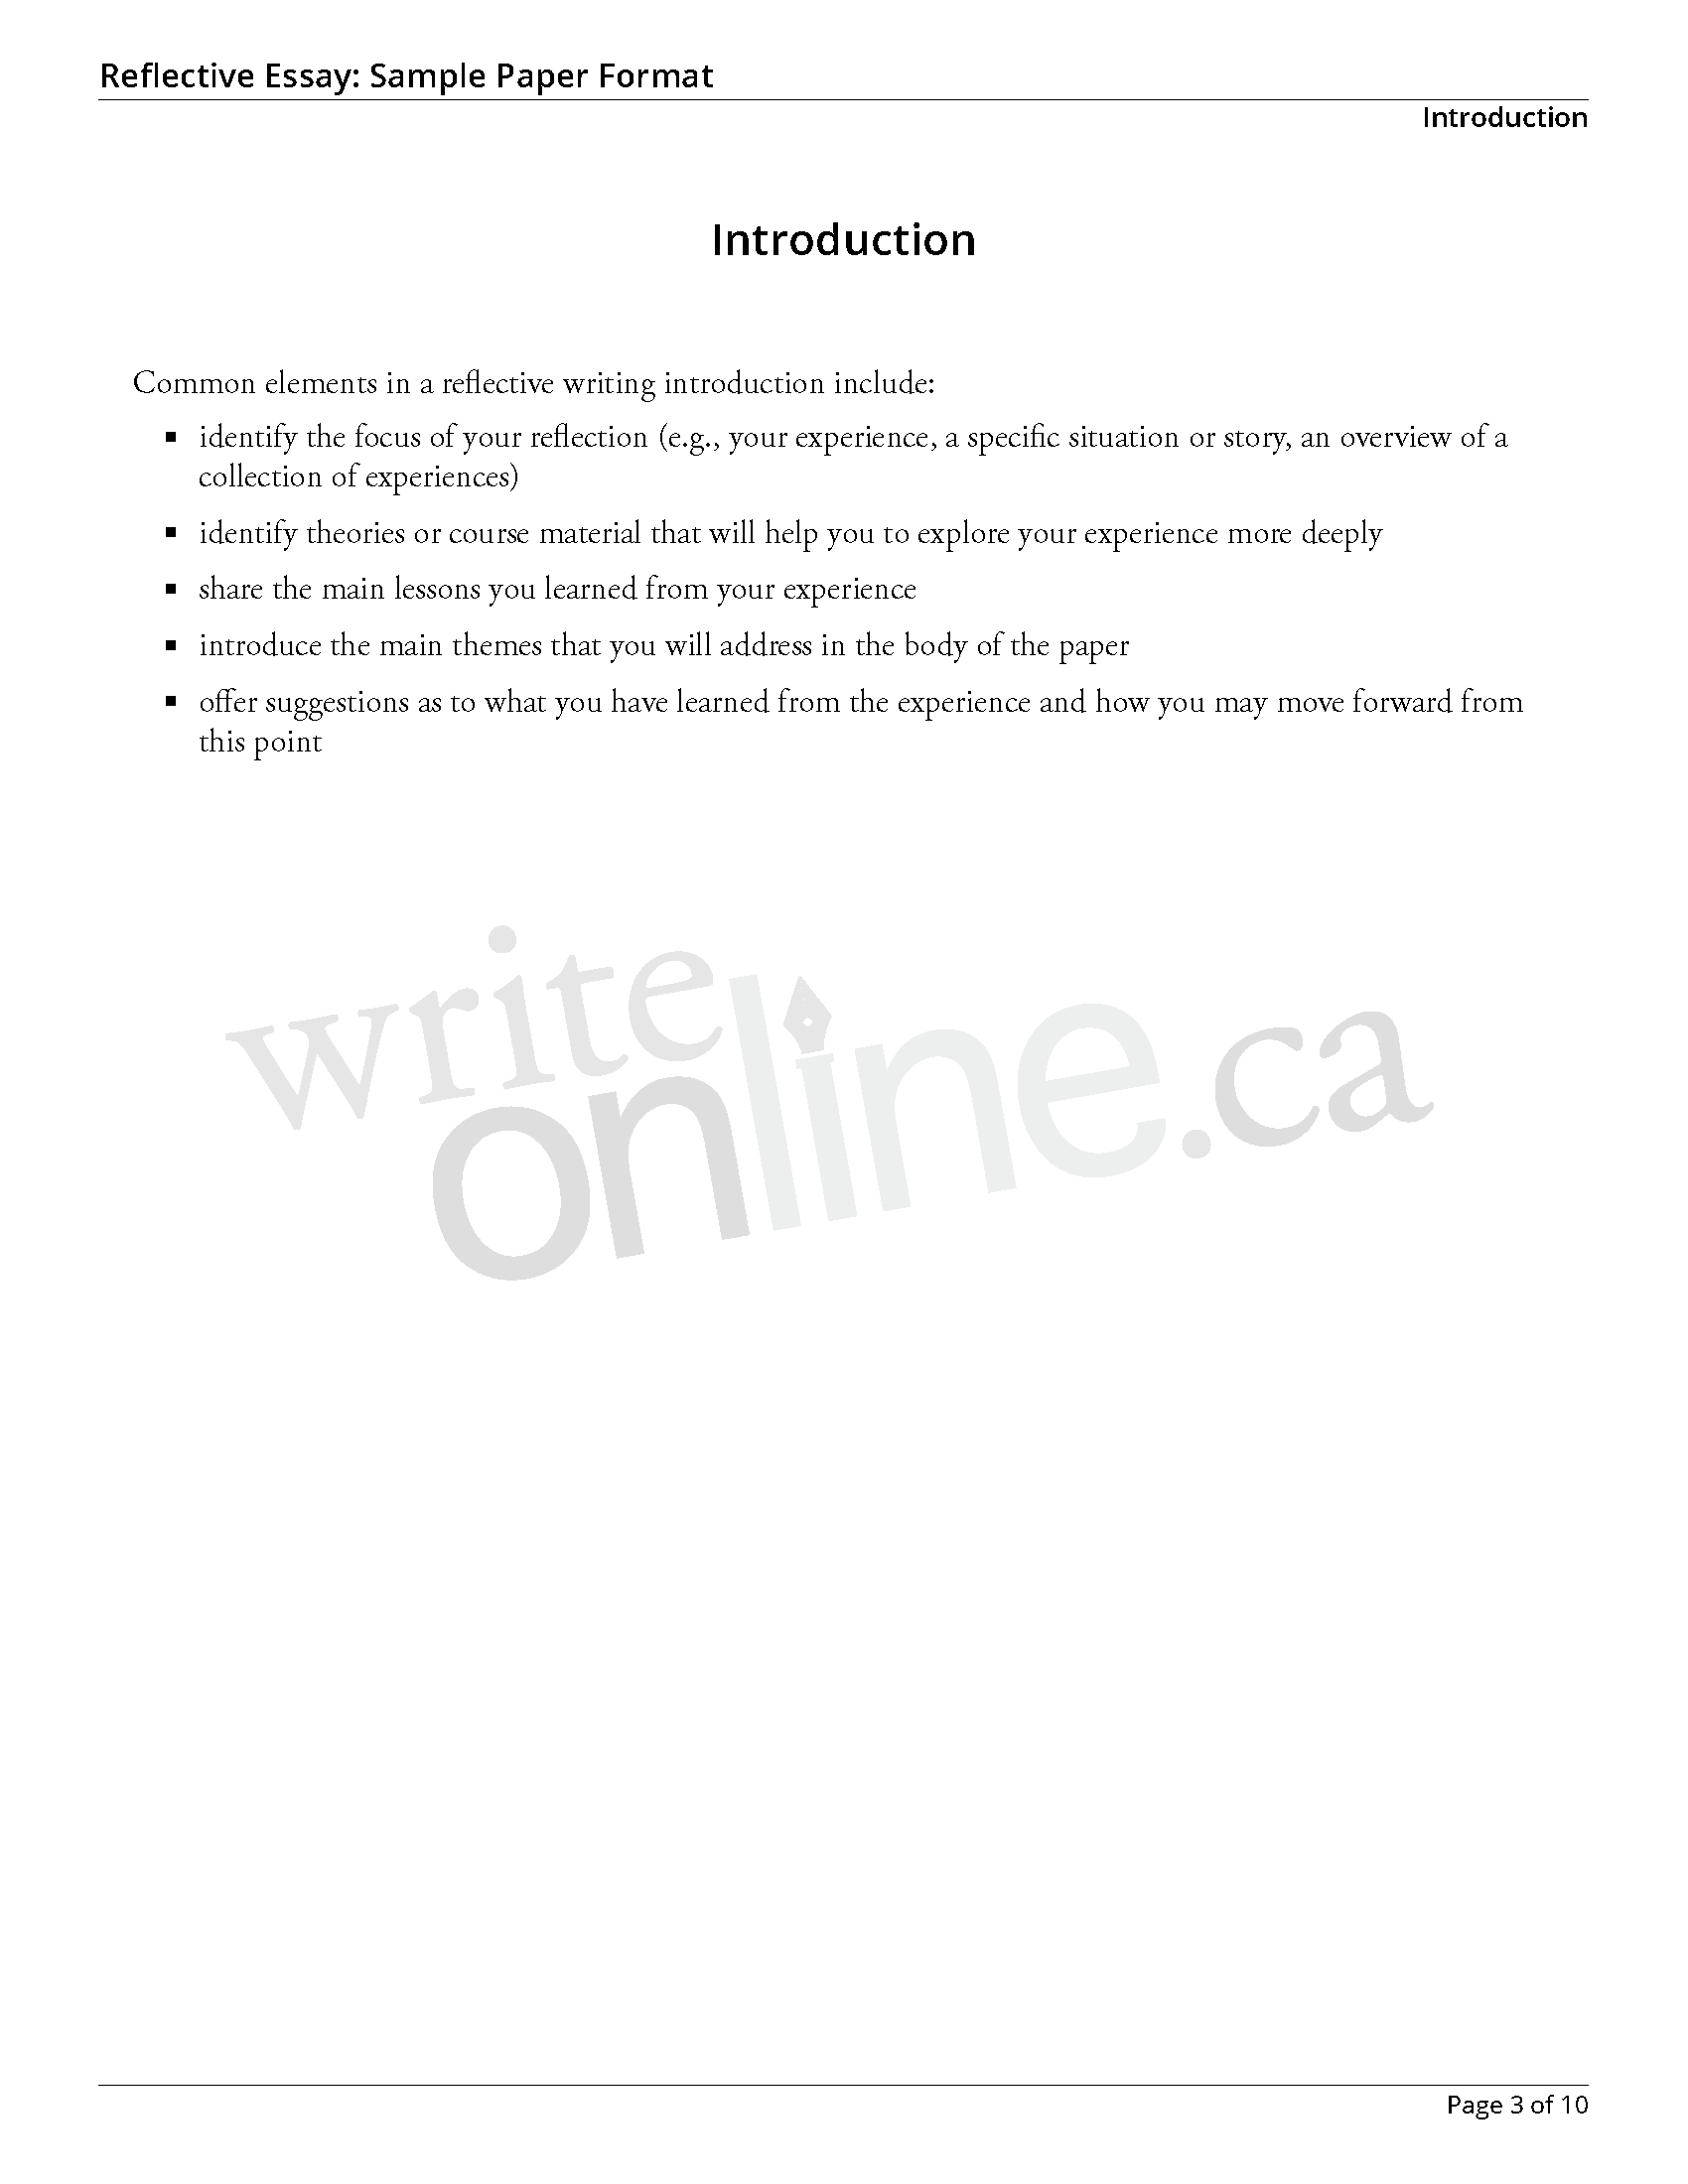 009 Reflectiveessay Sample Page 3 Essay Example How To Start Reflective Surprising A Introduction Write An Full